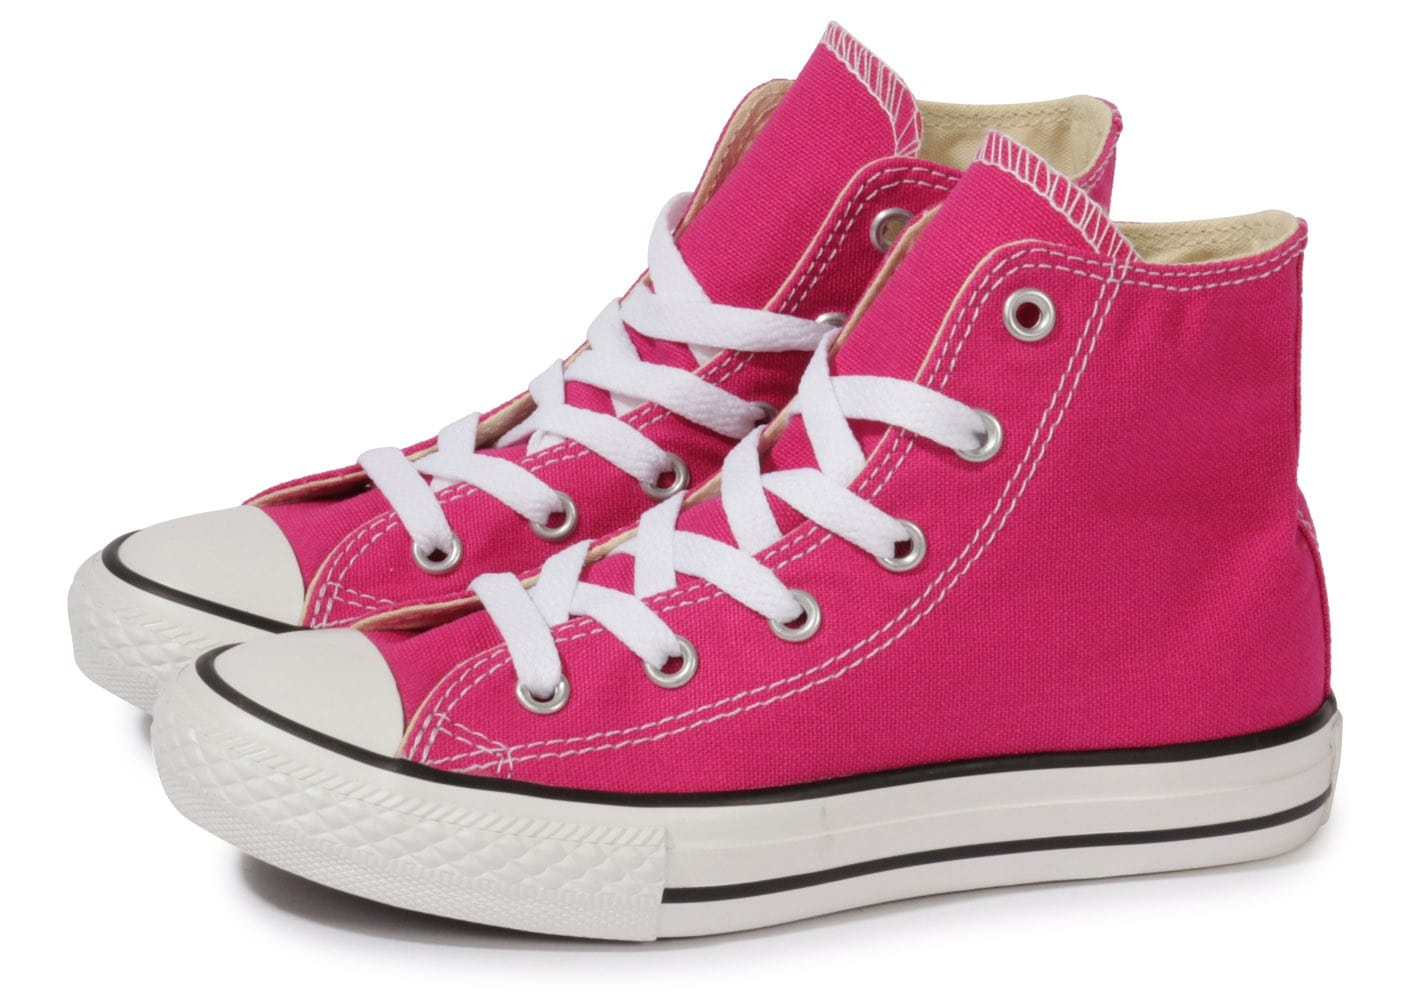 converse chuck taylor all star hi enfant rose chaussures chaussures chausport. Black Bedroom Furniture Sets. Home Design Ideas